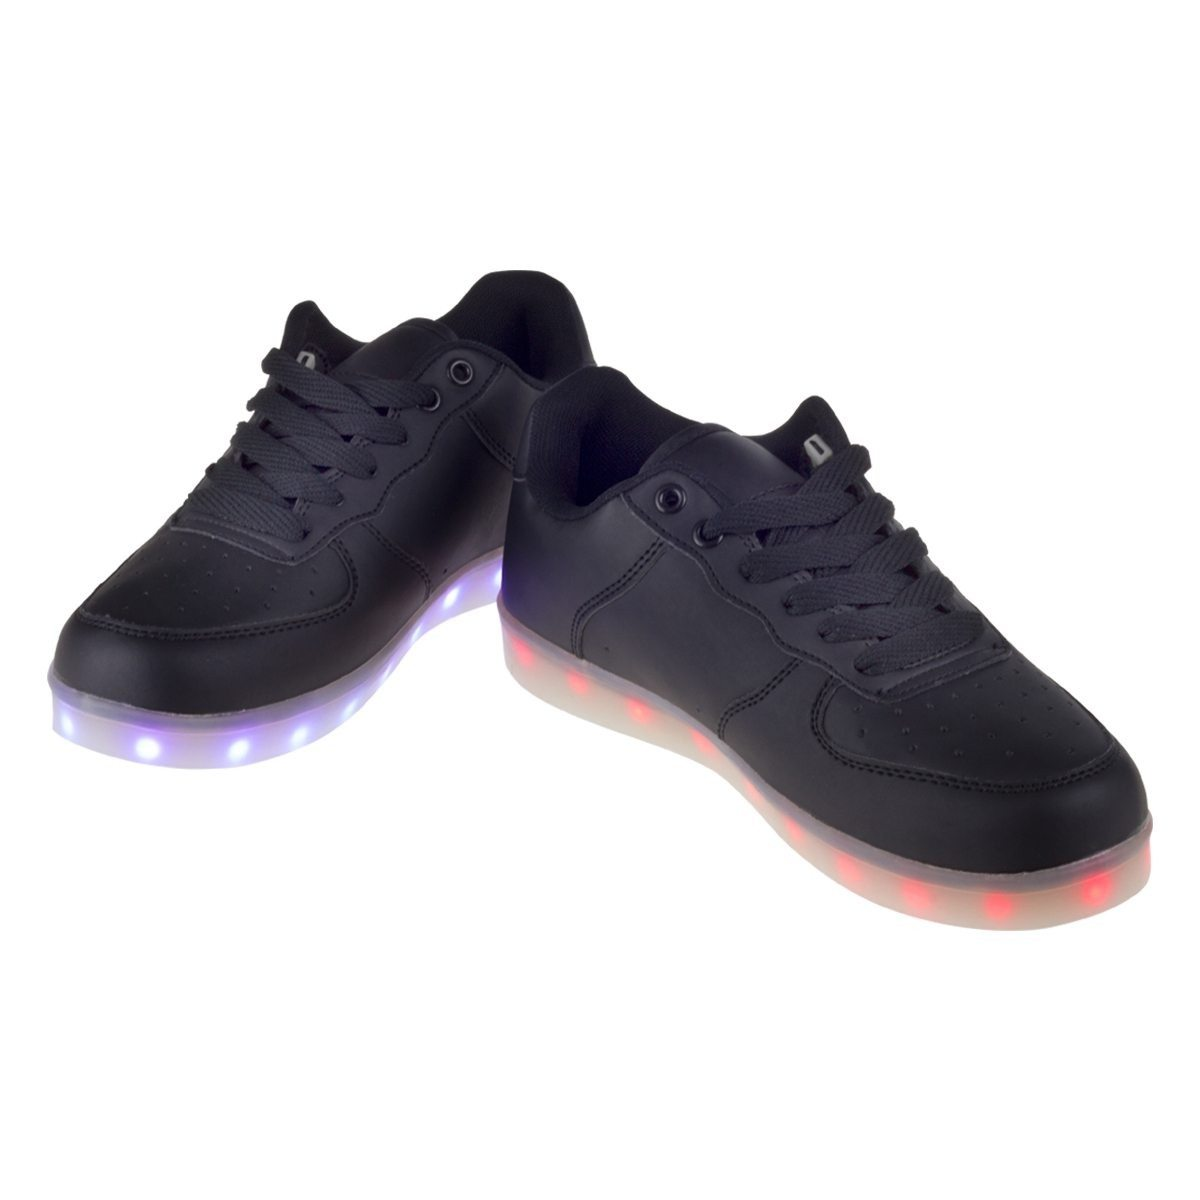 LED-Sneakers Modell unten